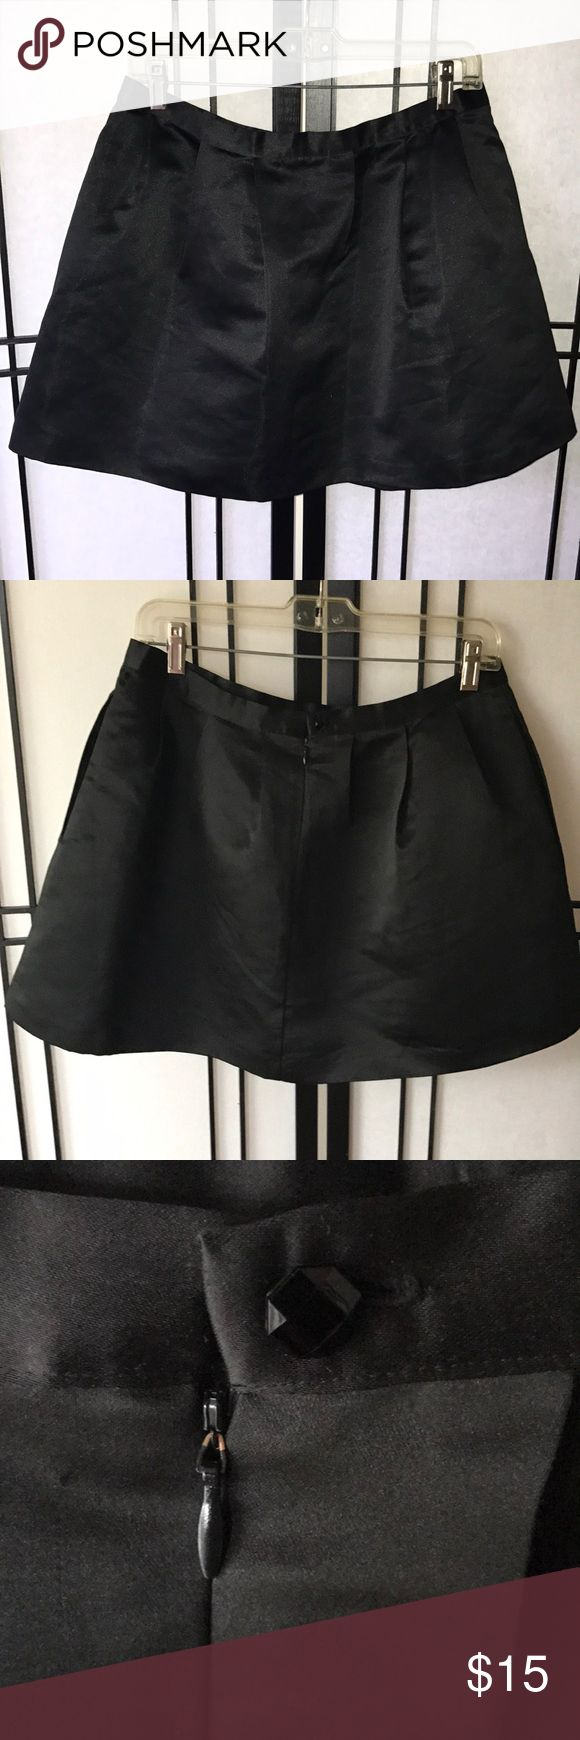 """Black silk skaters skirt from Forever 21 Beautiful Black silk skaters skirt from Forever 21. Love this too death but the hubs thinks it's too short. Bummer! 151/2"""" in length. Fully lined. Forever 21 Skirts Mini"""